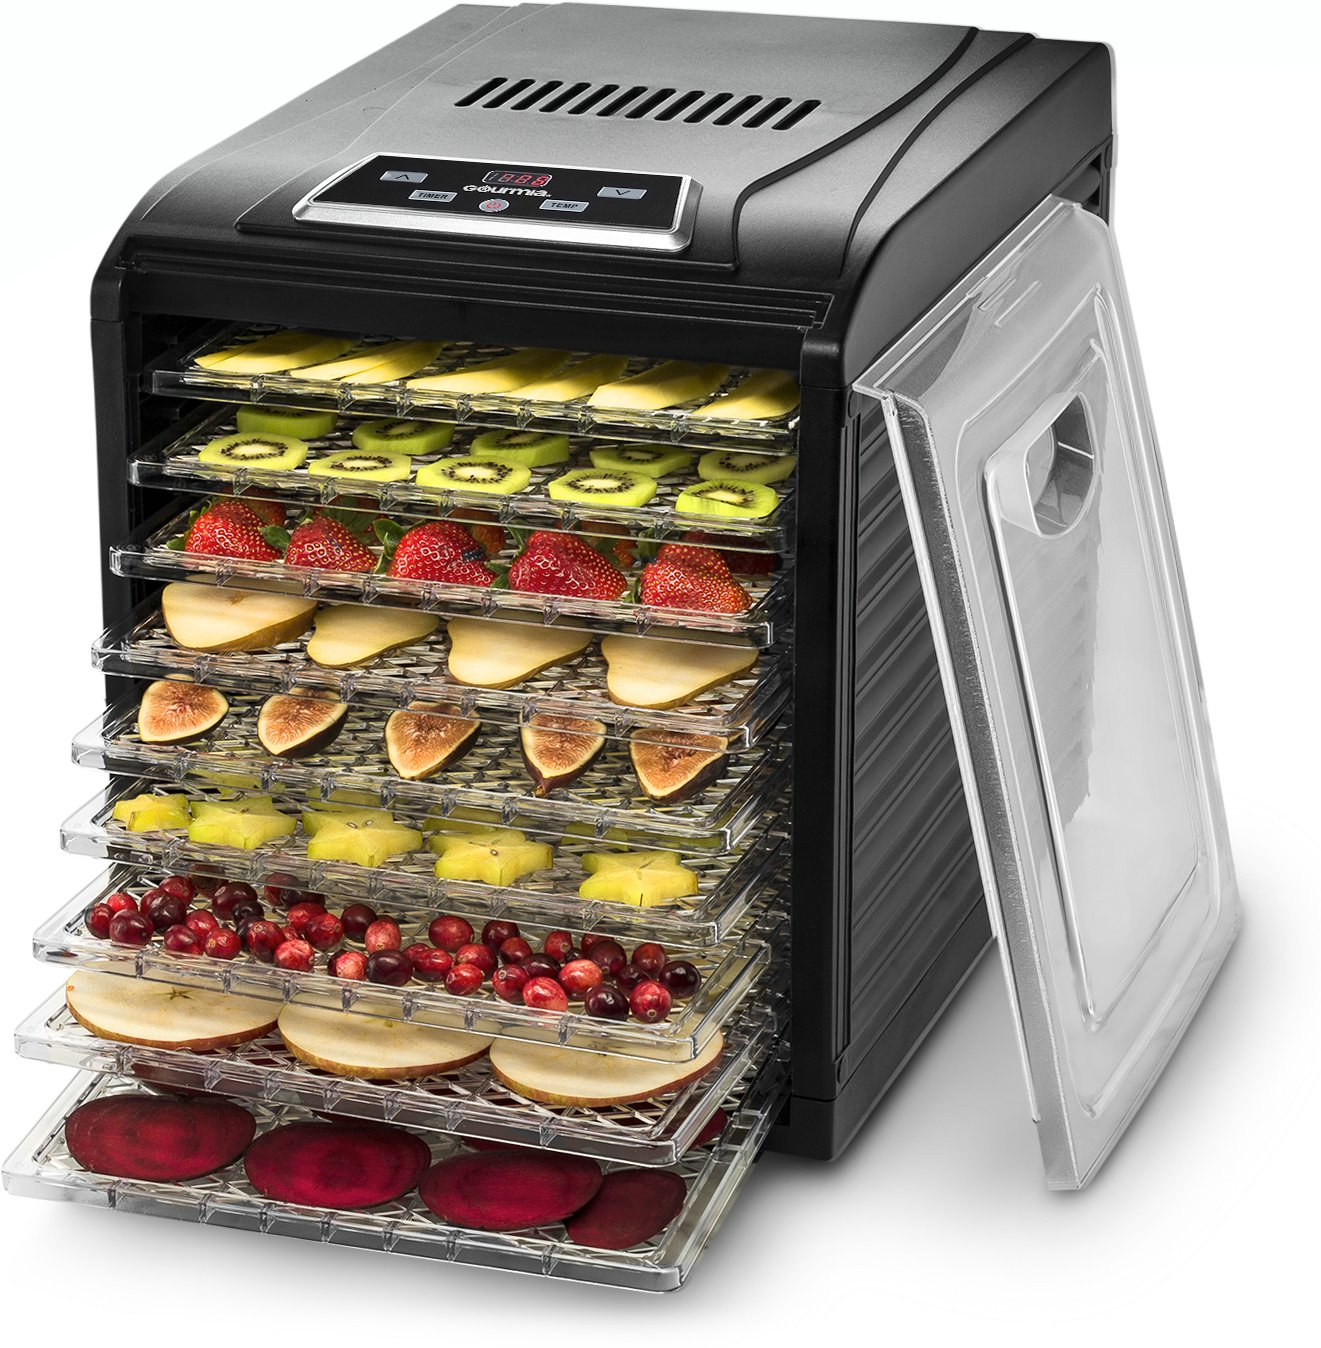 Gourmia GFD1950 Premium Electric Food Dehydrator Machine - Digital Timer and Temperature Control - 9 Drying Trays - Perfect for Beef Jerky, Herbs, Fruit Leather - BPA Free - Black